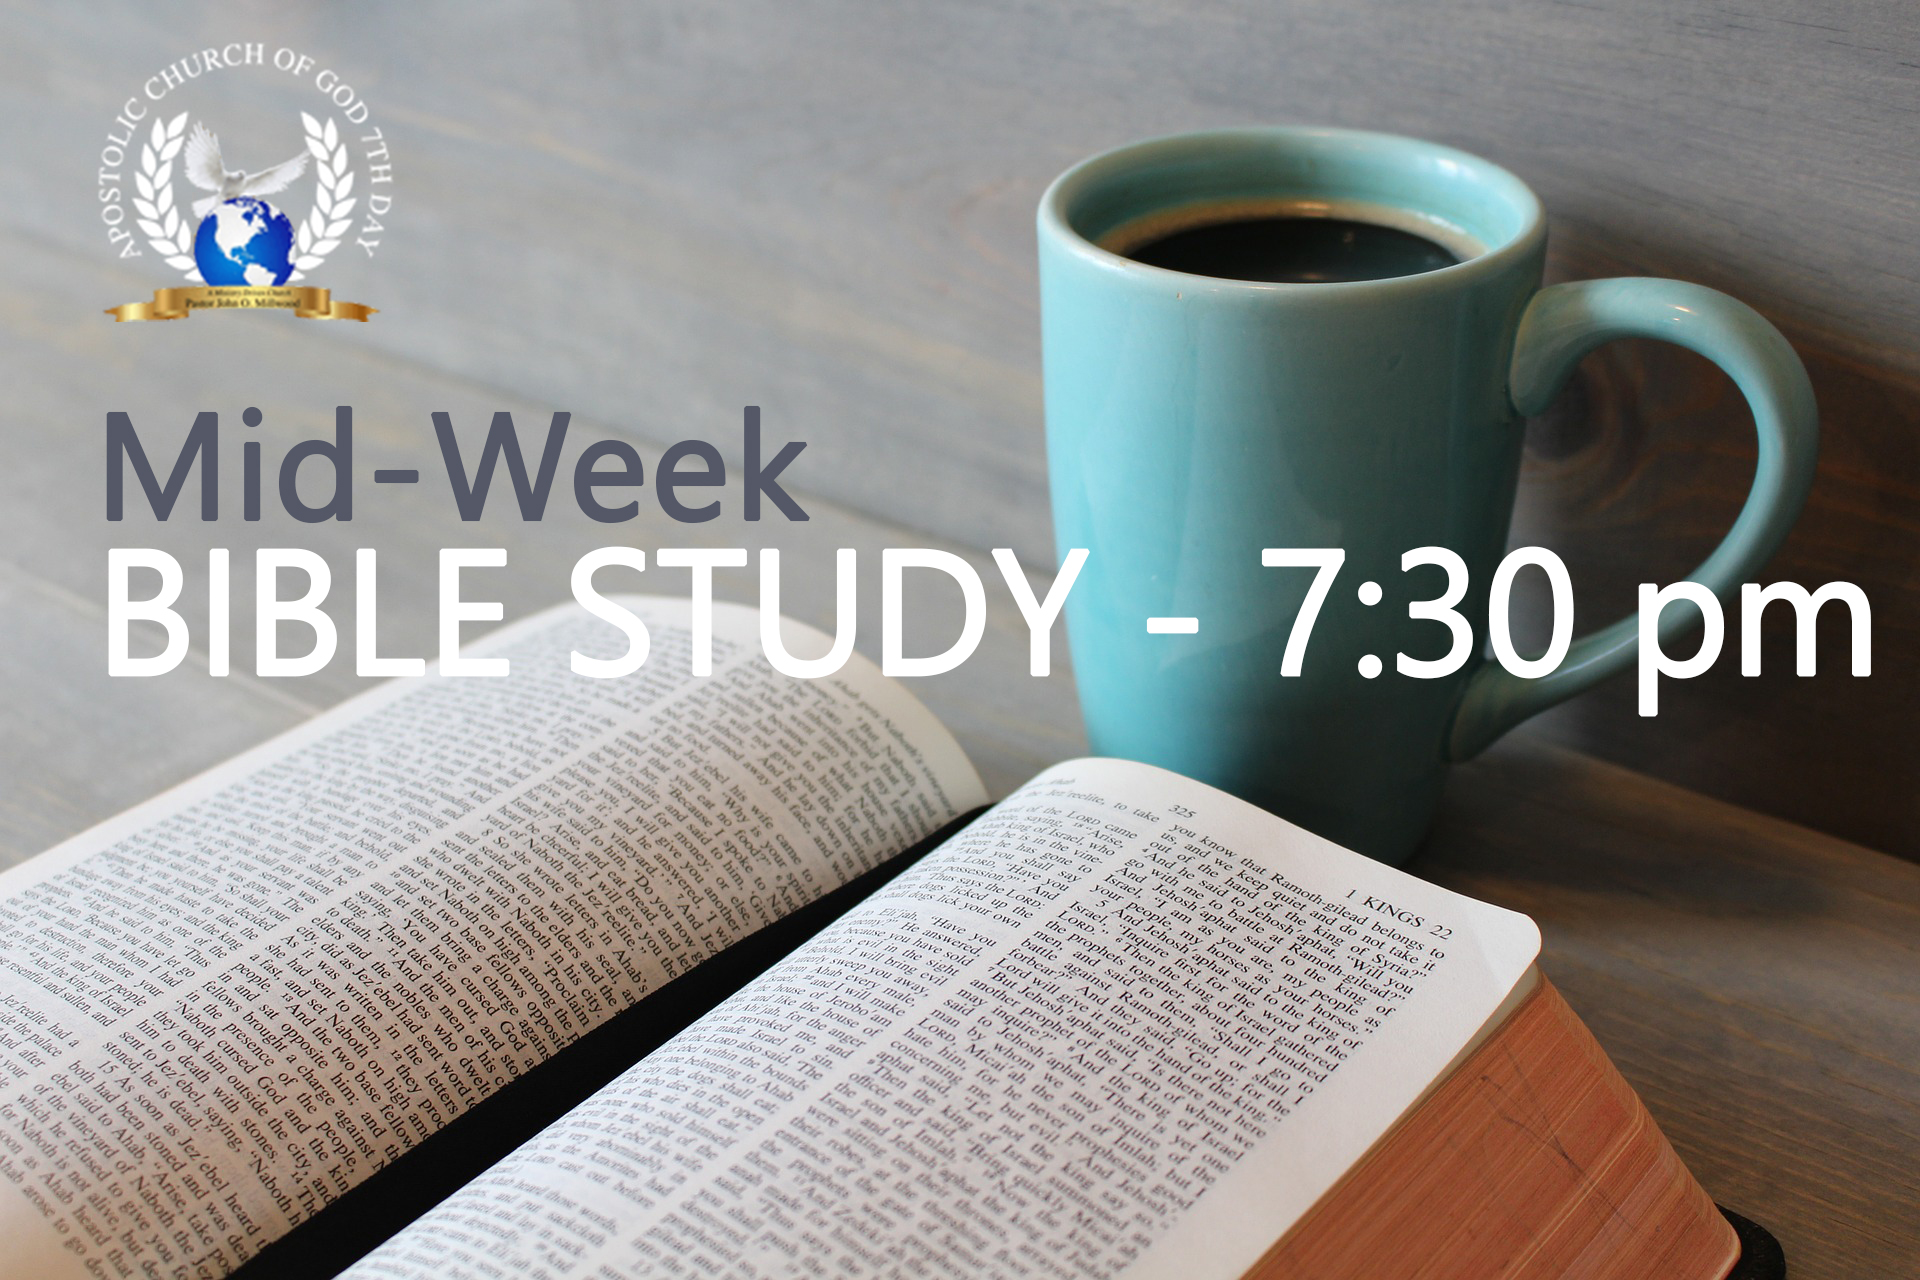 Mid-Week Bible Study